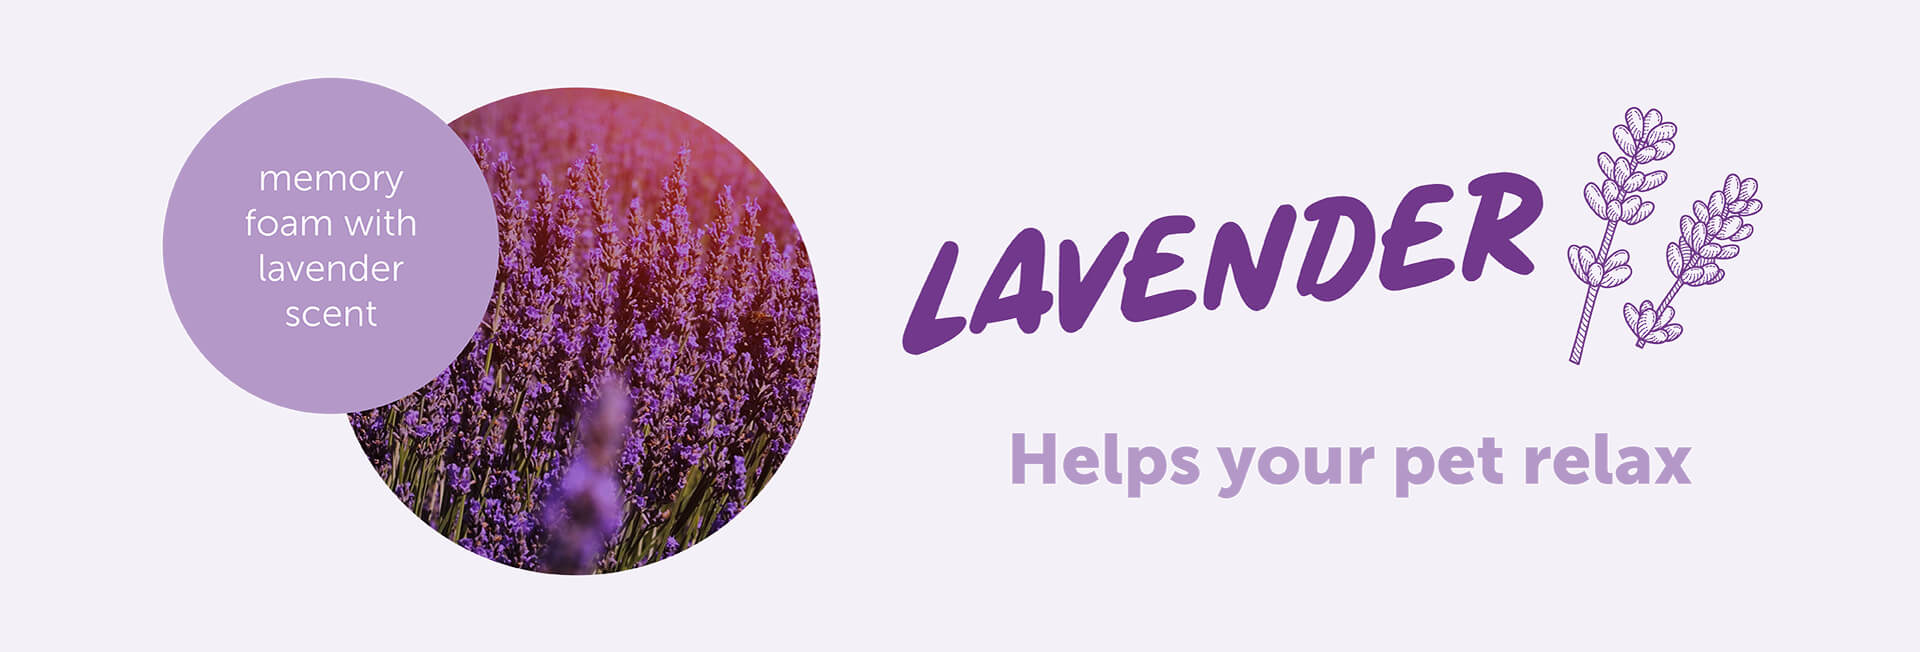 Memory foam infused with lavender to help your pet relax